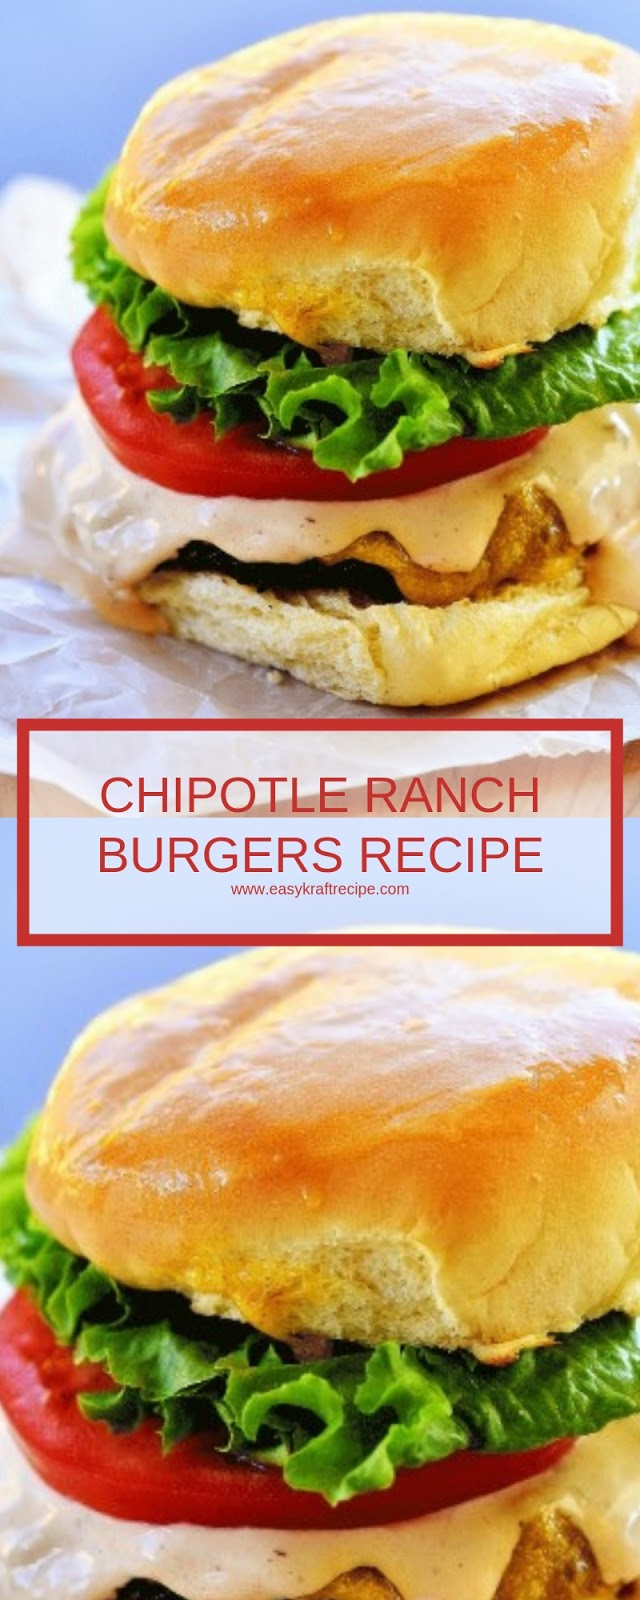 CHIPOTLE RANCH BURGERS RECIPE